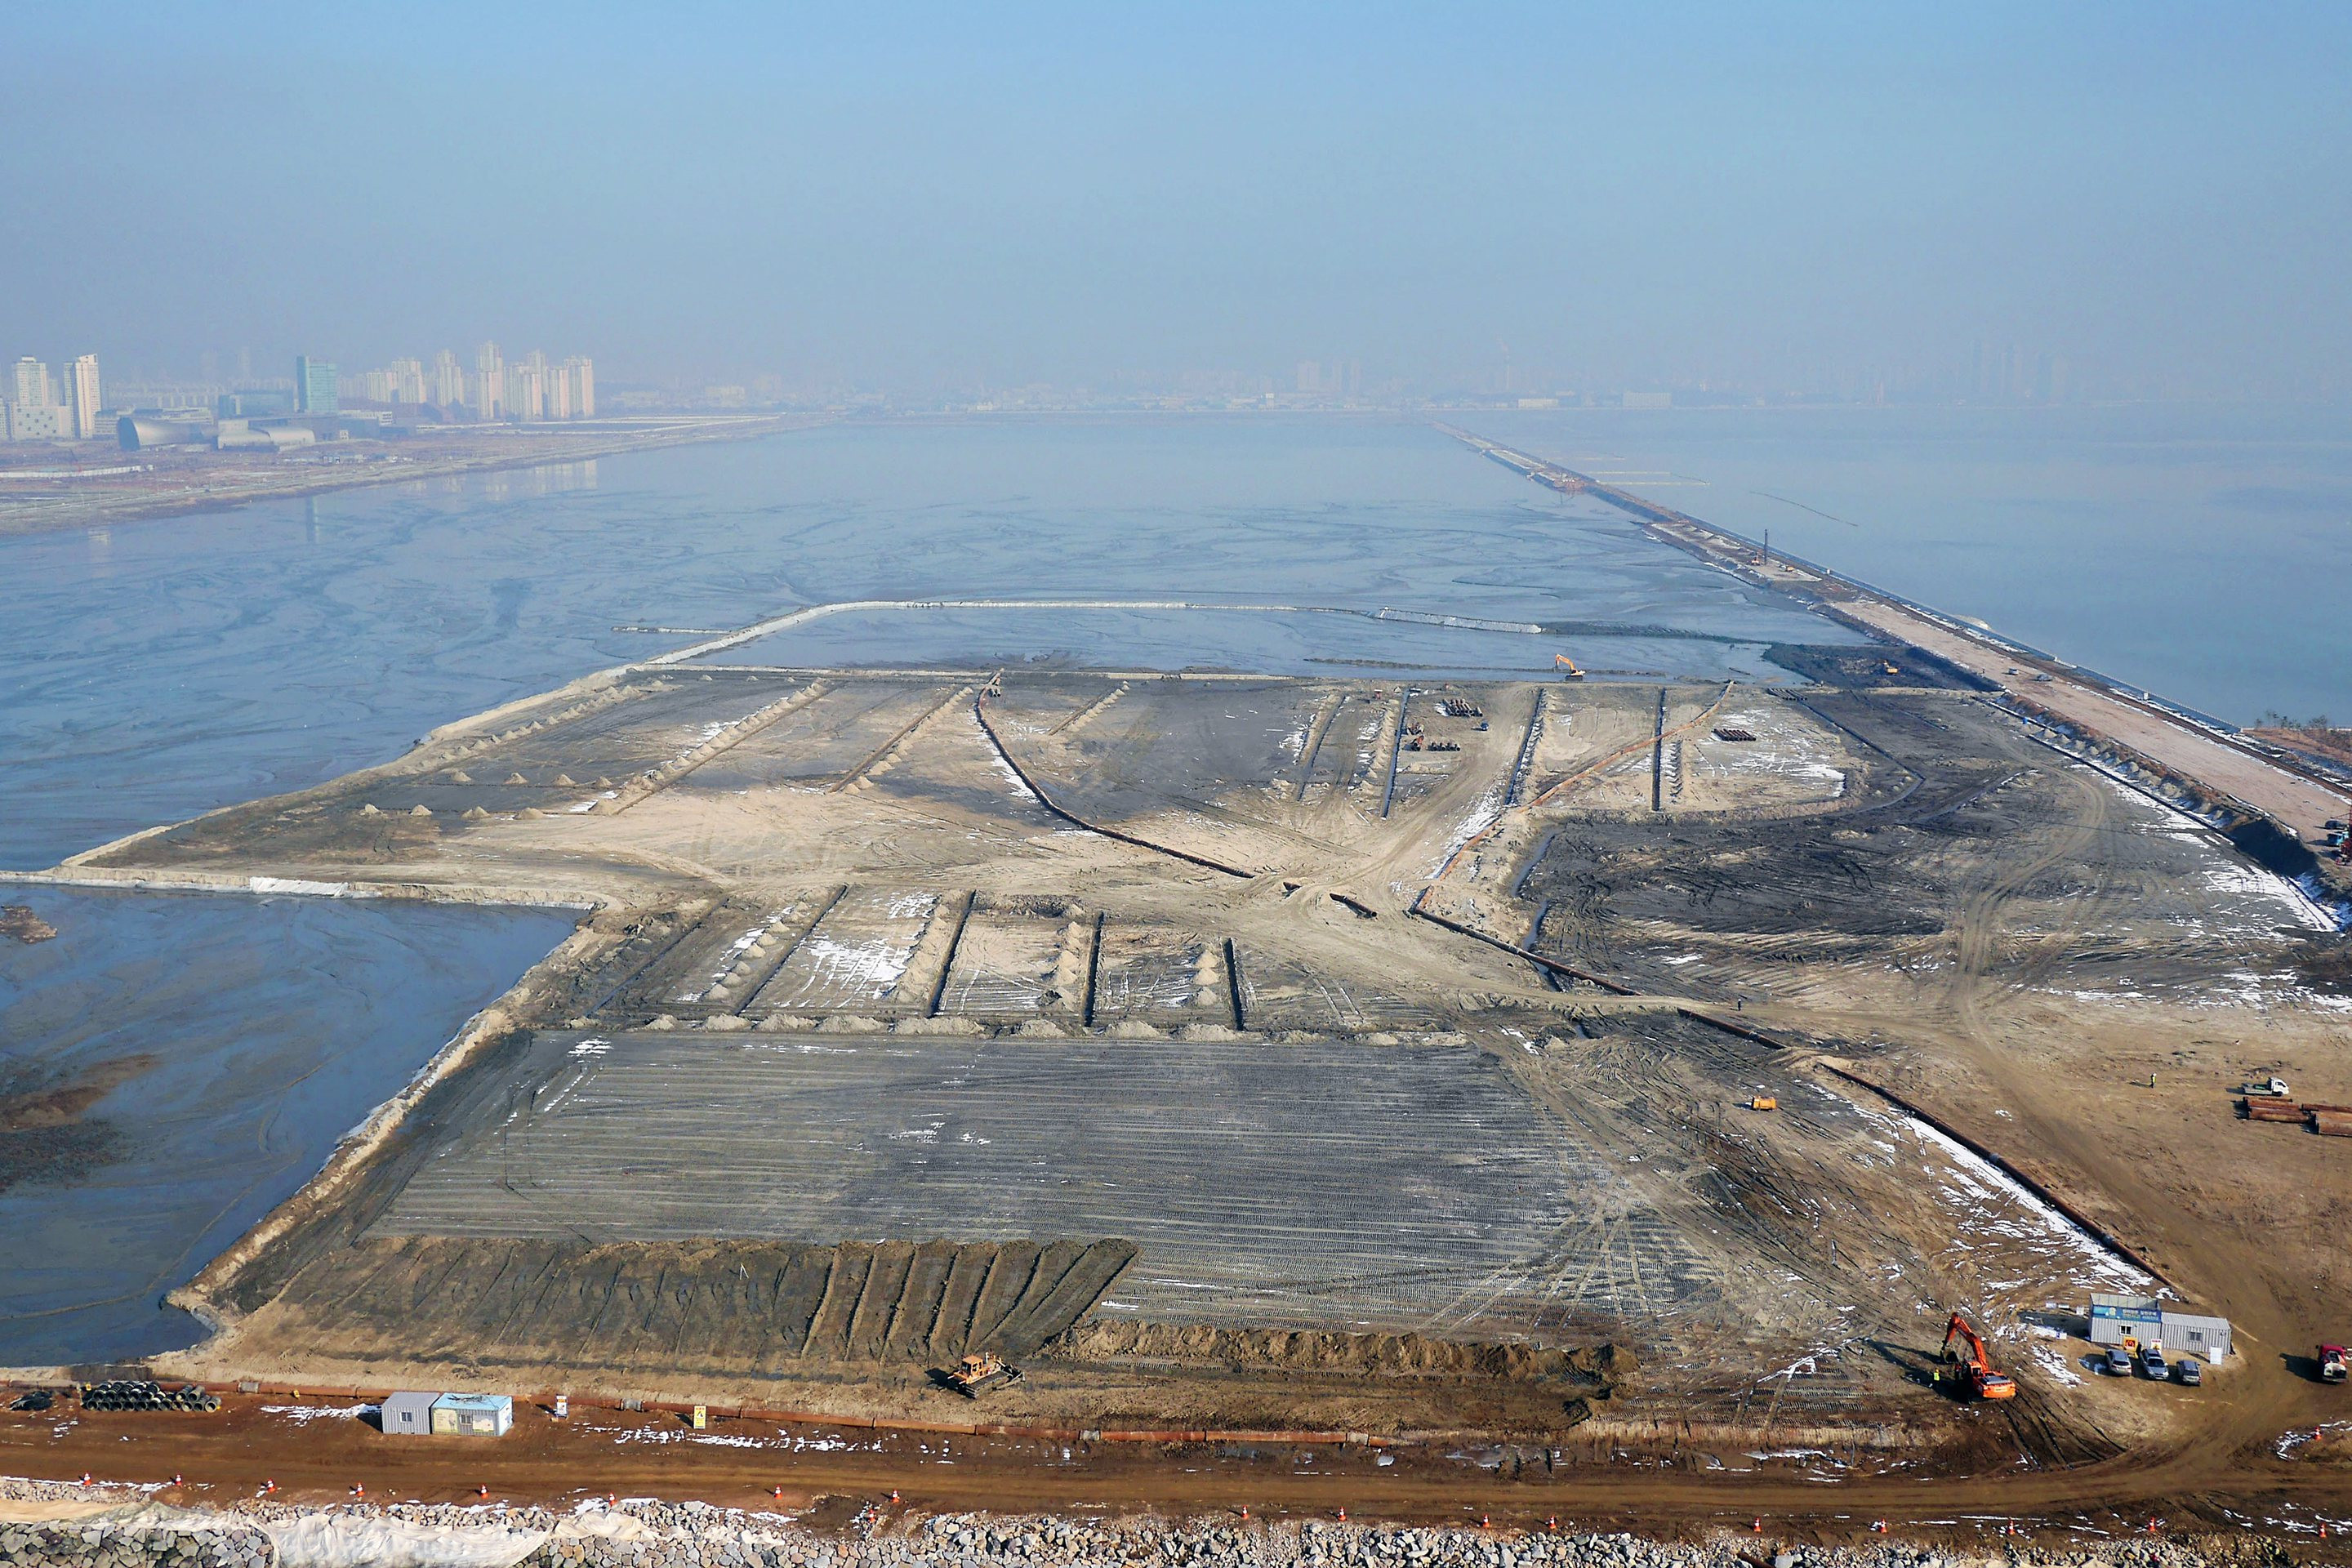 Aerial view of land reclamation